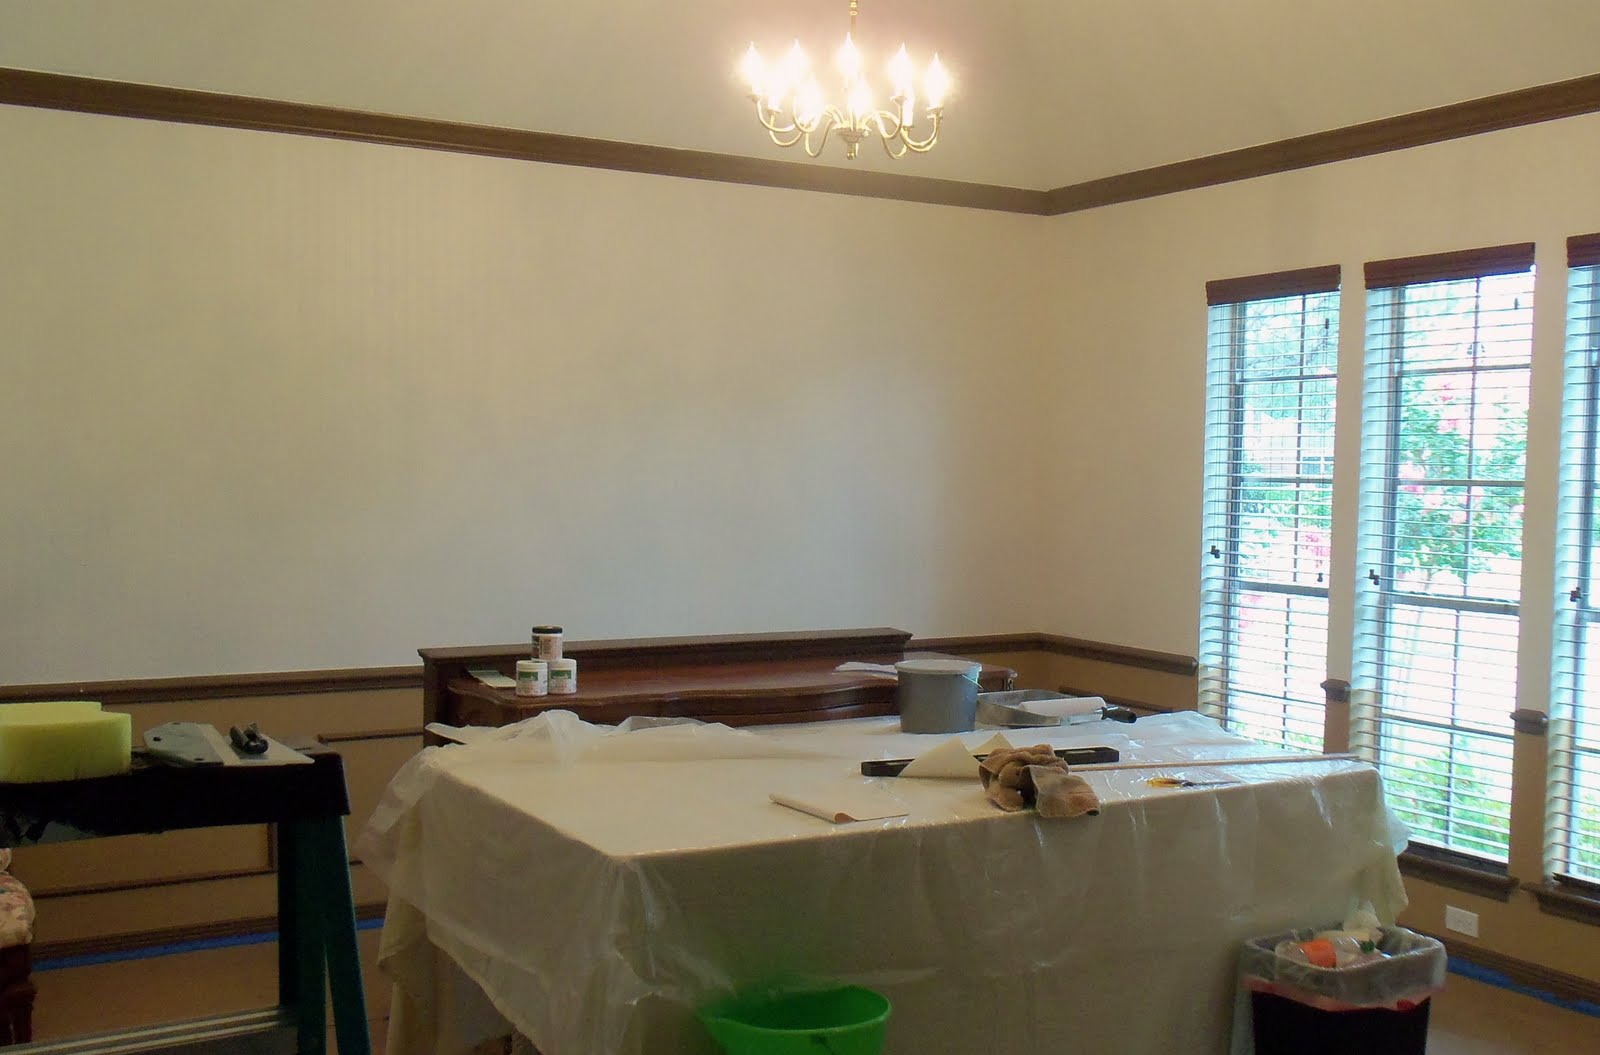 Used Beadboard Paintable Wallpaper From Lowes And It Came Out 1600x1055